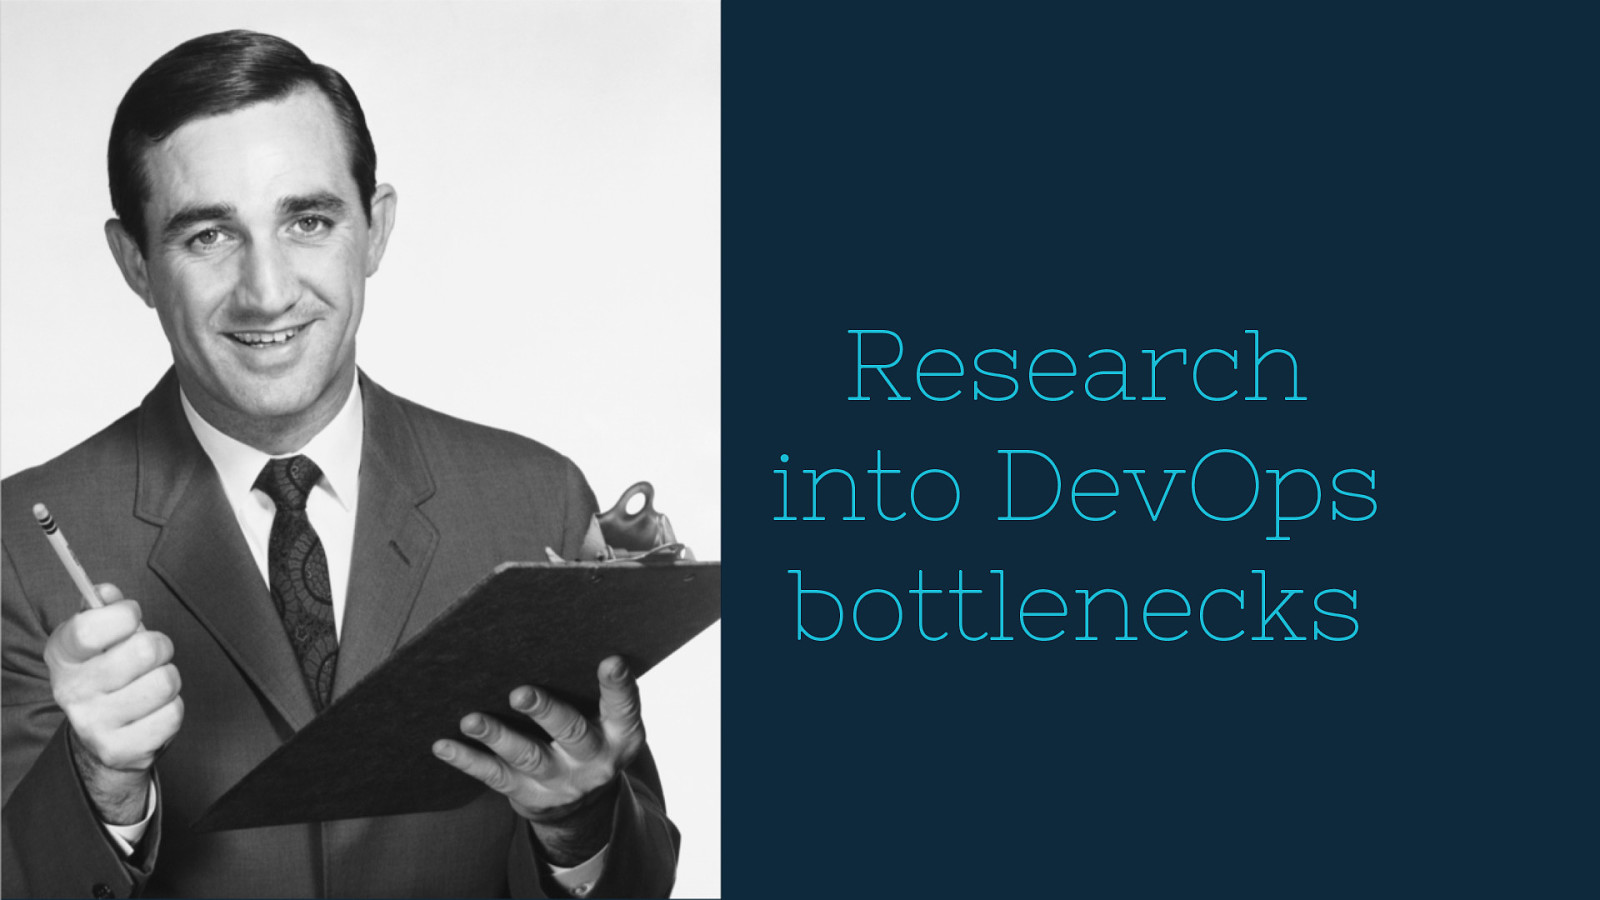 A Research Study into DevOps Bottlenecks